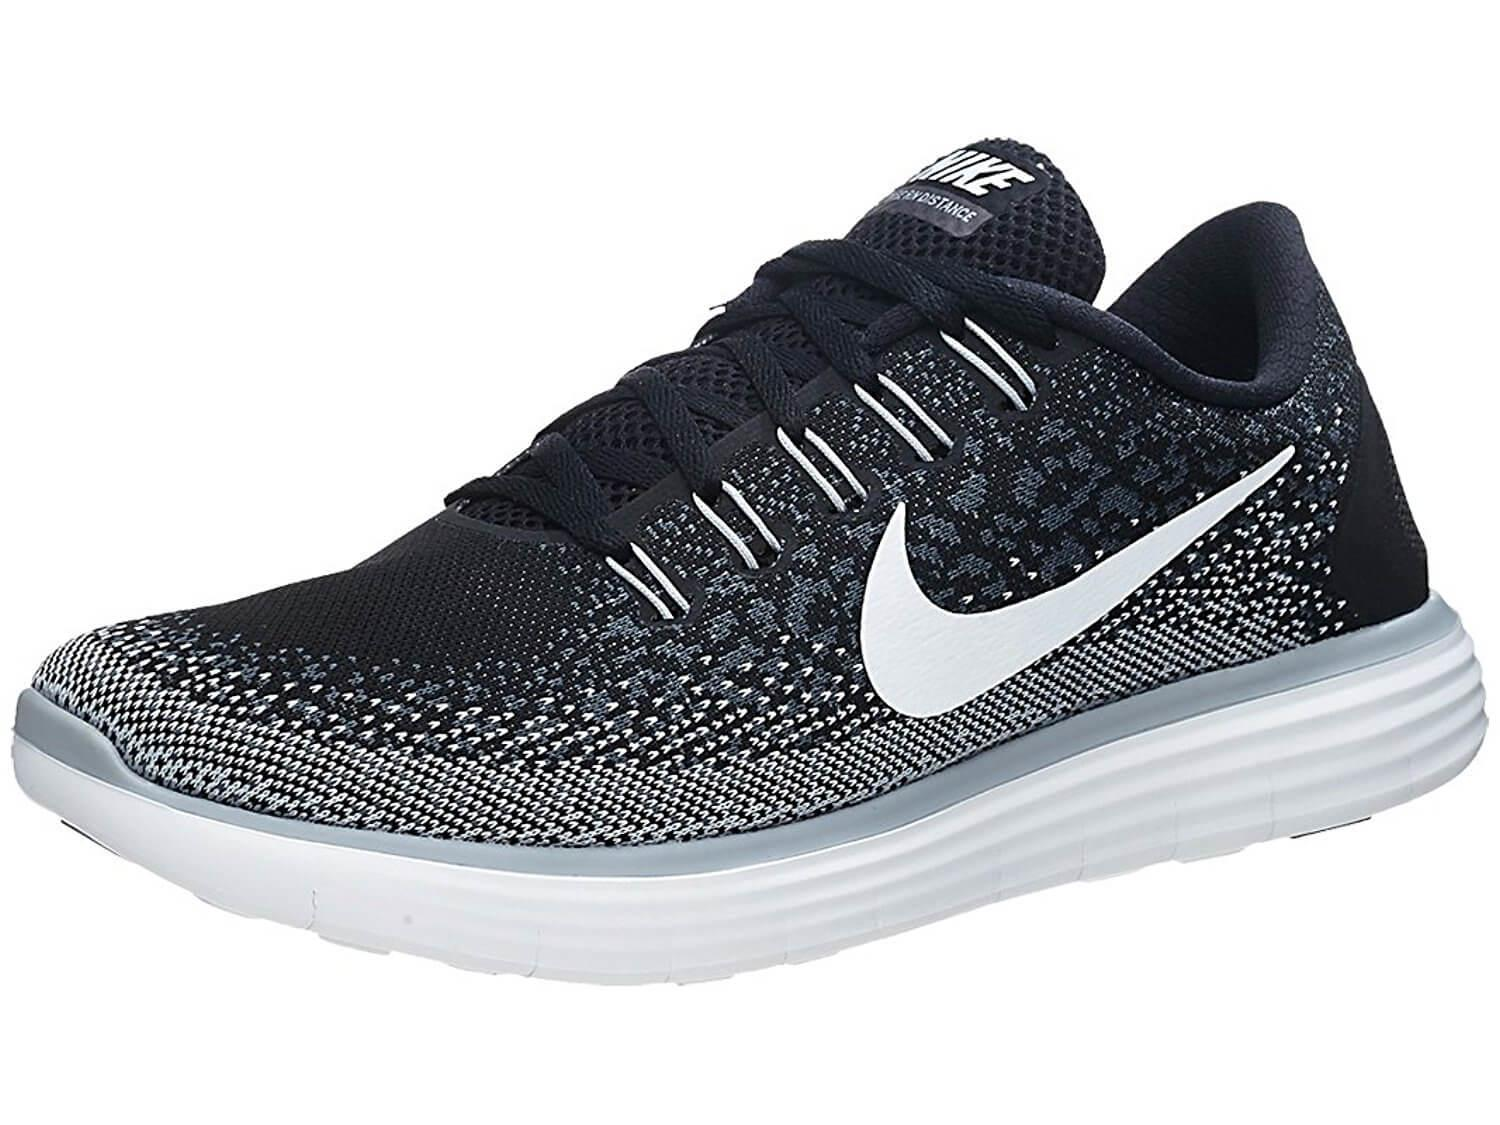 0c2116a629dc The Nike Free RN Distance is an excellent all-around running shoe.